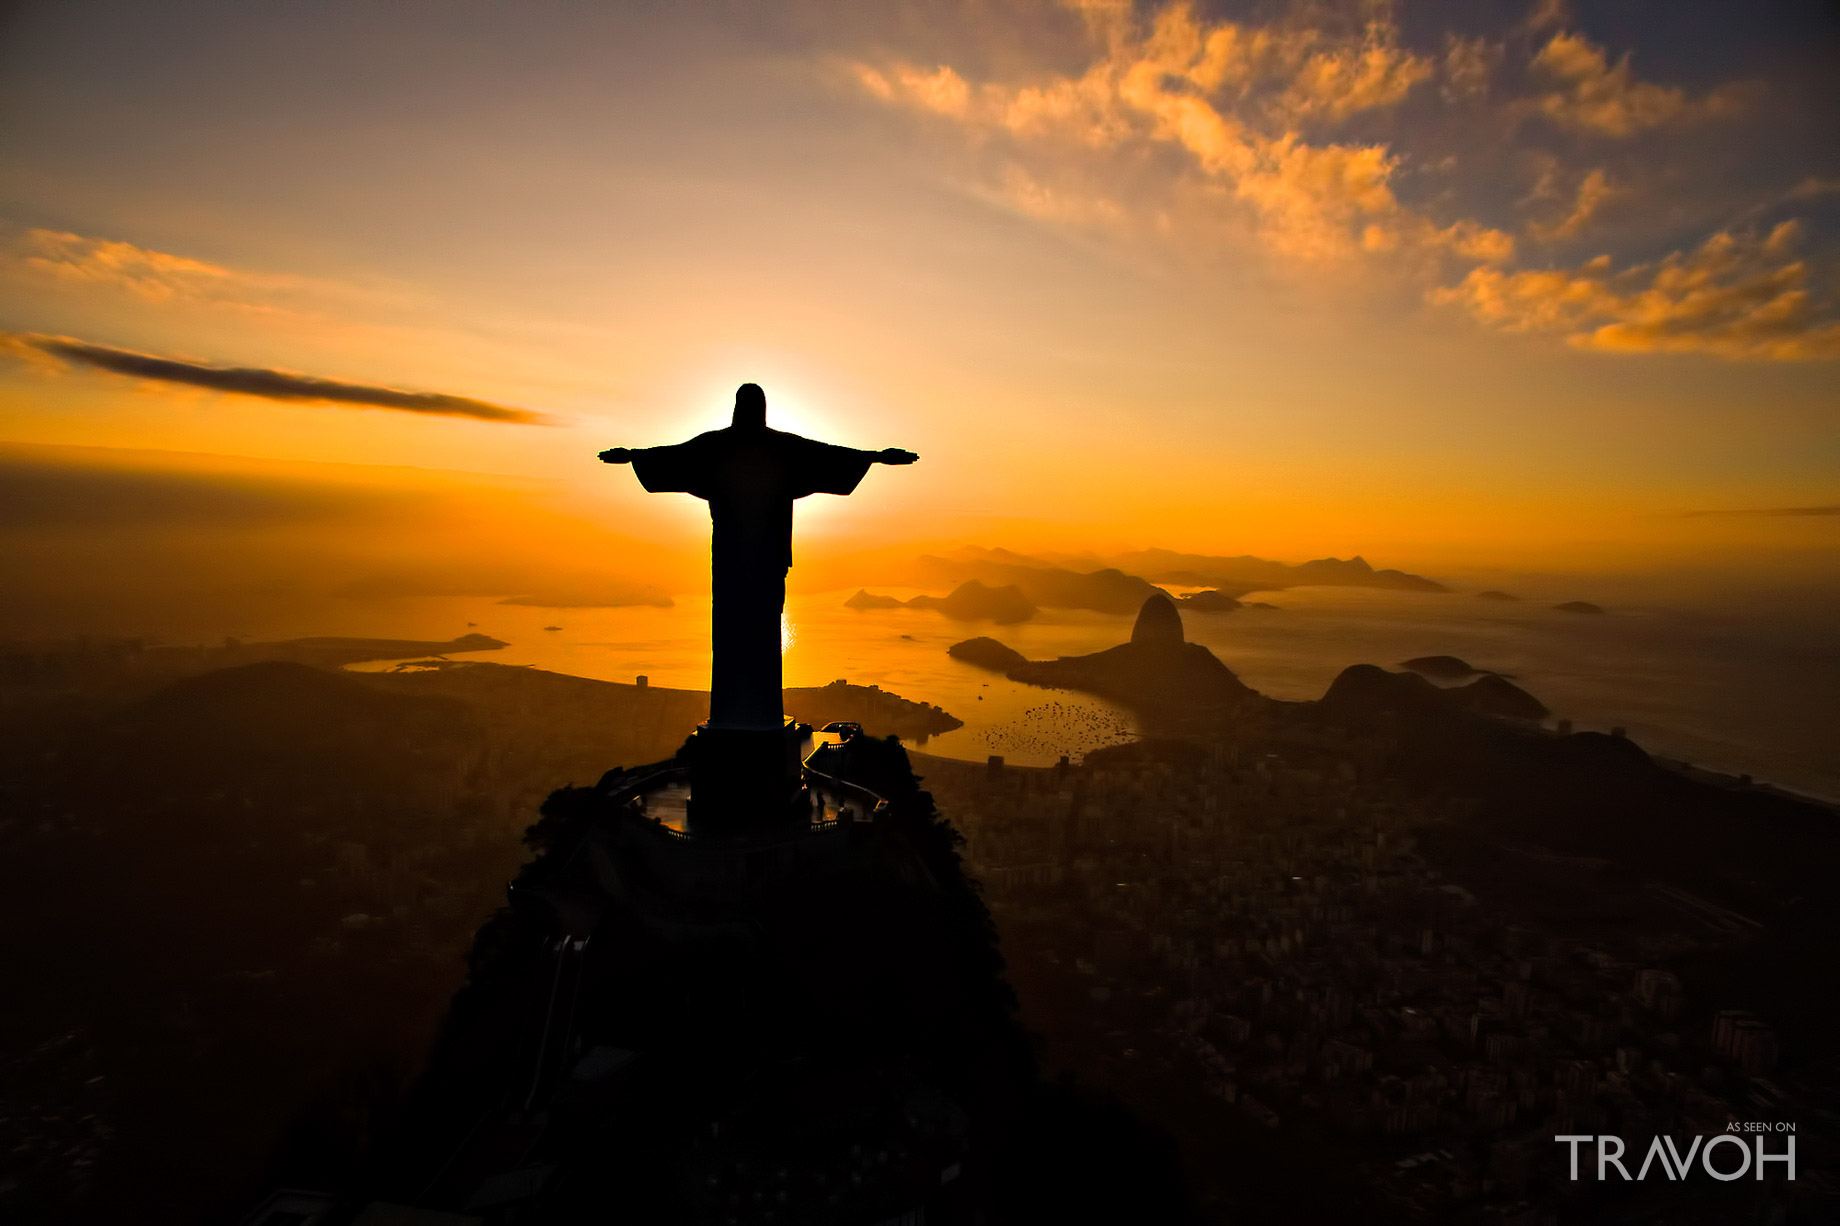 A Dramatic Sunset Illuminates the Statue of Jesus on Top of ...